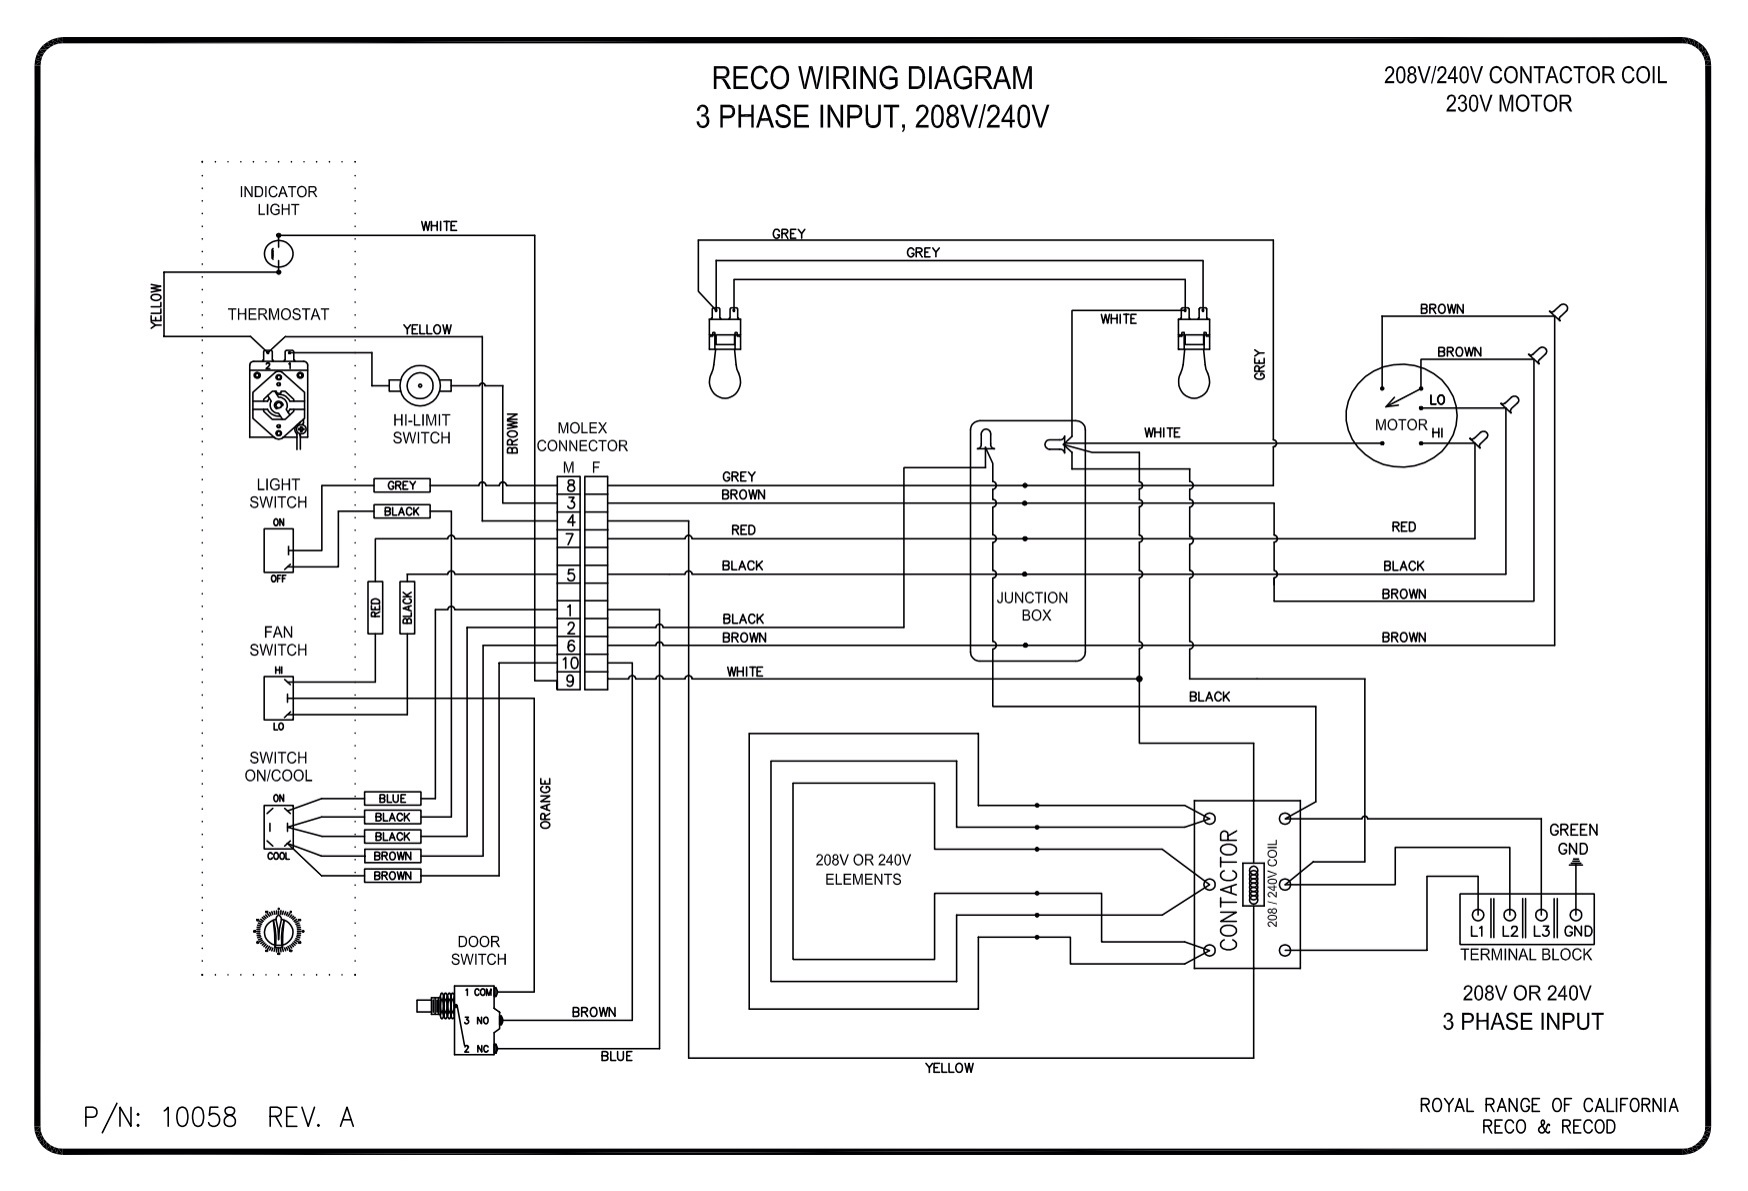 3 phase oven wiring diagram   27 wiring diagram images